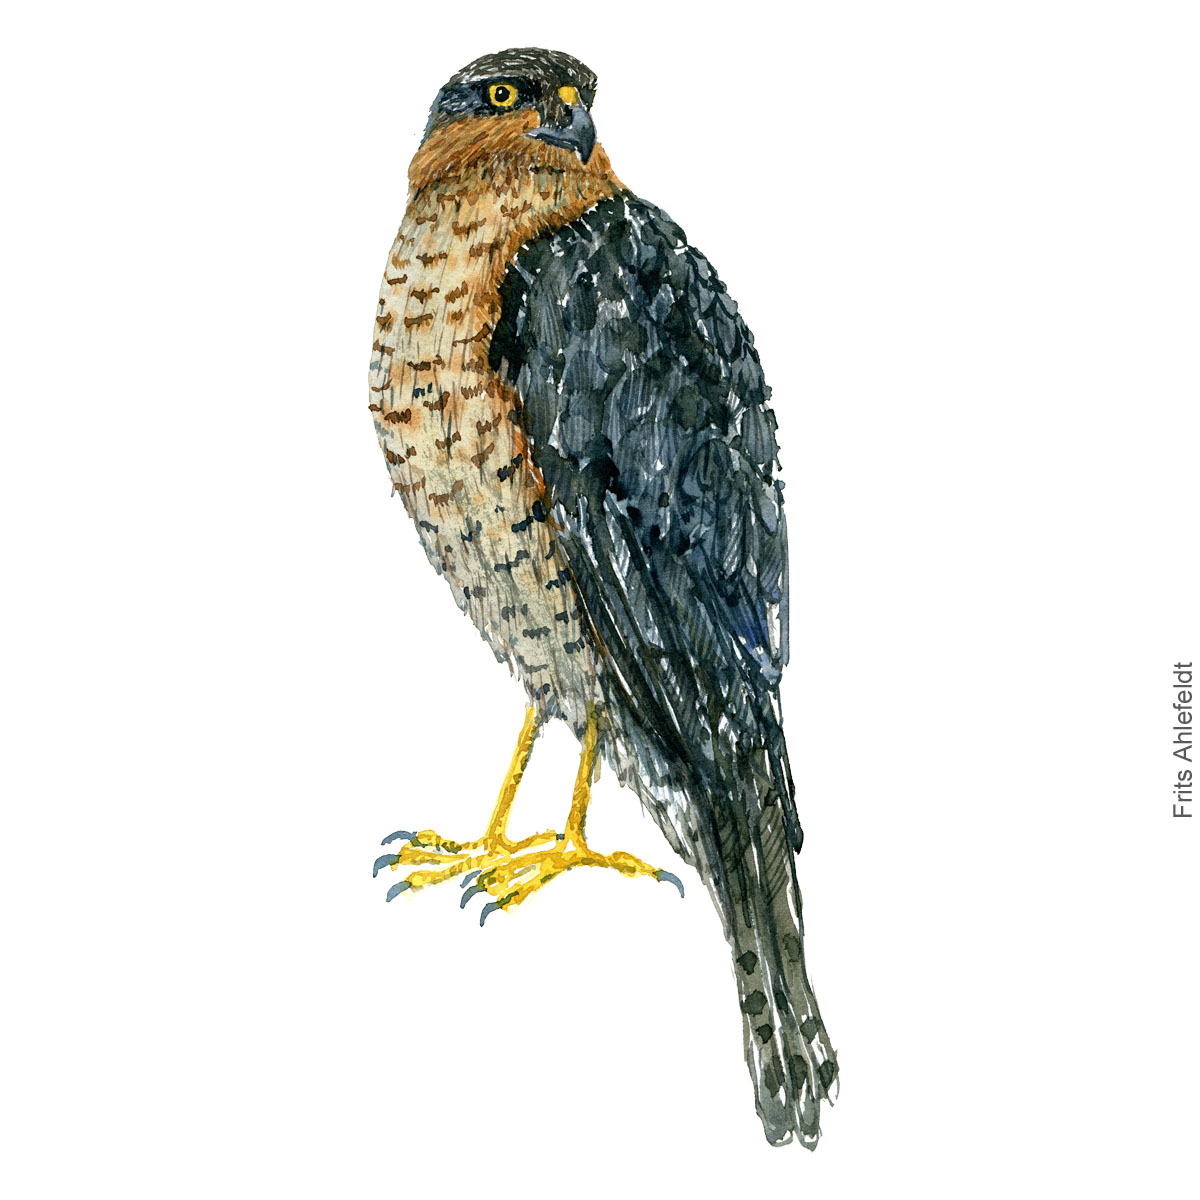 Spurvehoeg - Eurasian sparrow hawk - Bird painting in watercolor by Frits Ahlefeldt - Fugle akvarel